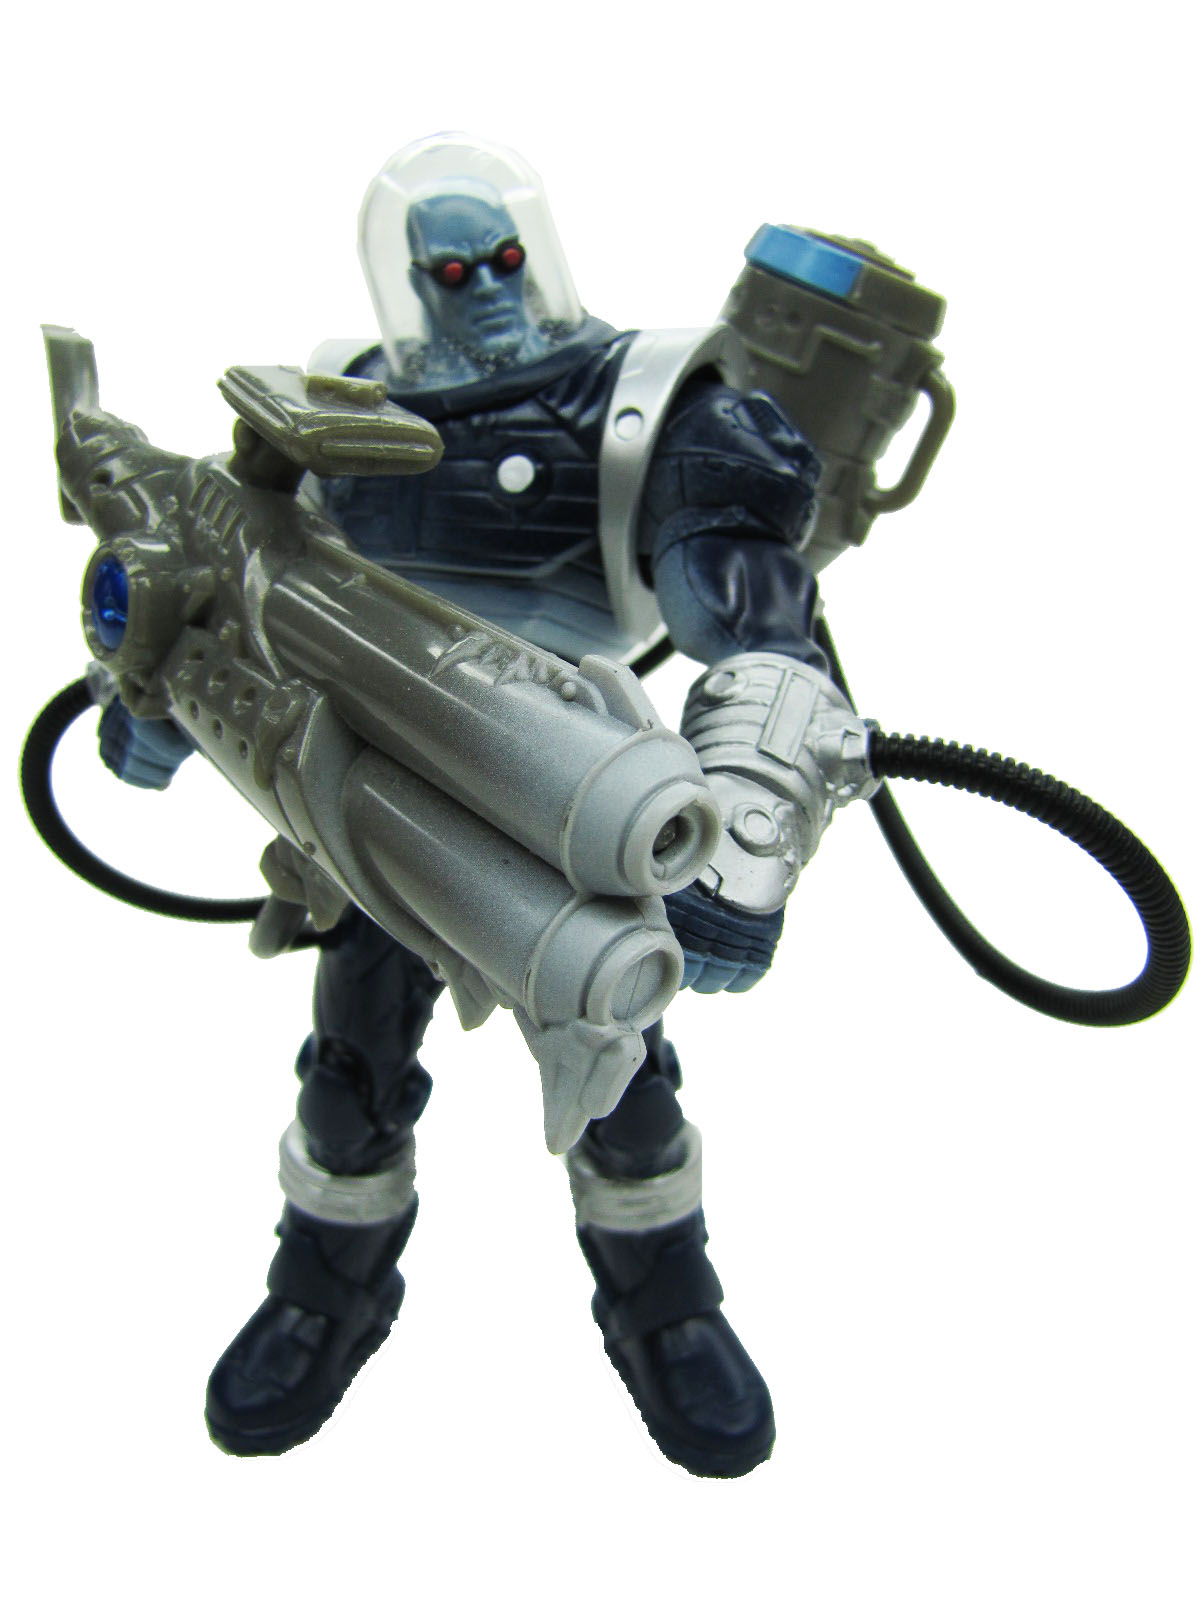 DC Super Heroes Ice Canon Mr. Freeze Complete